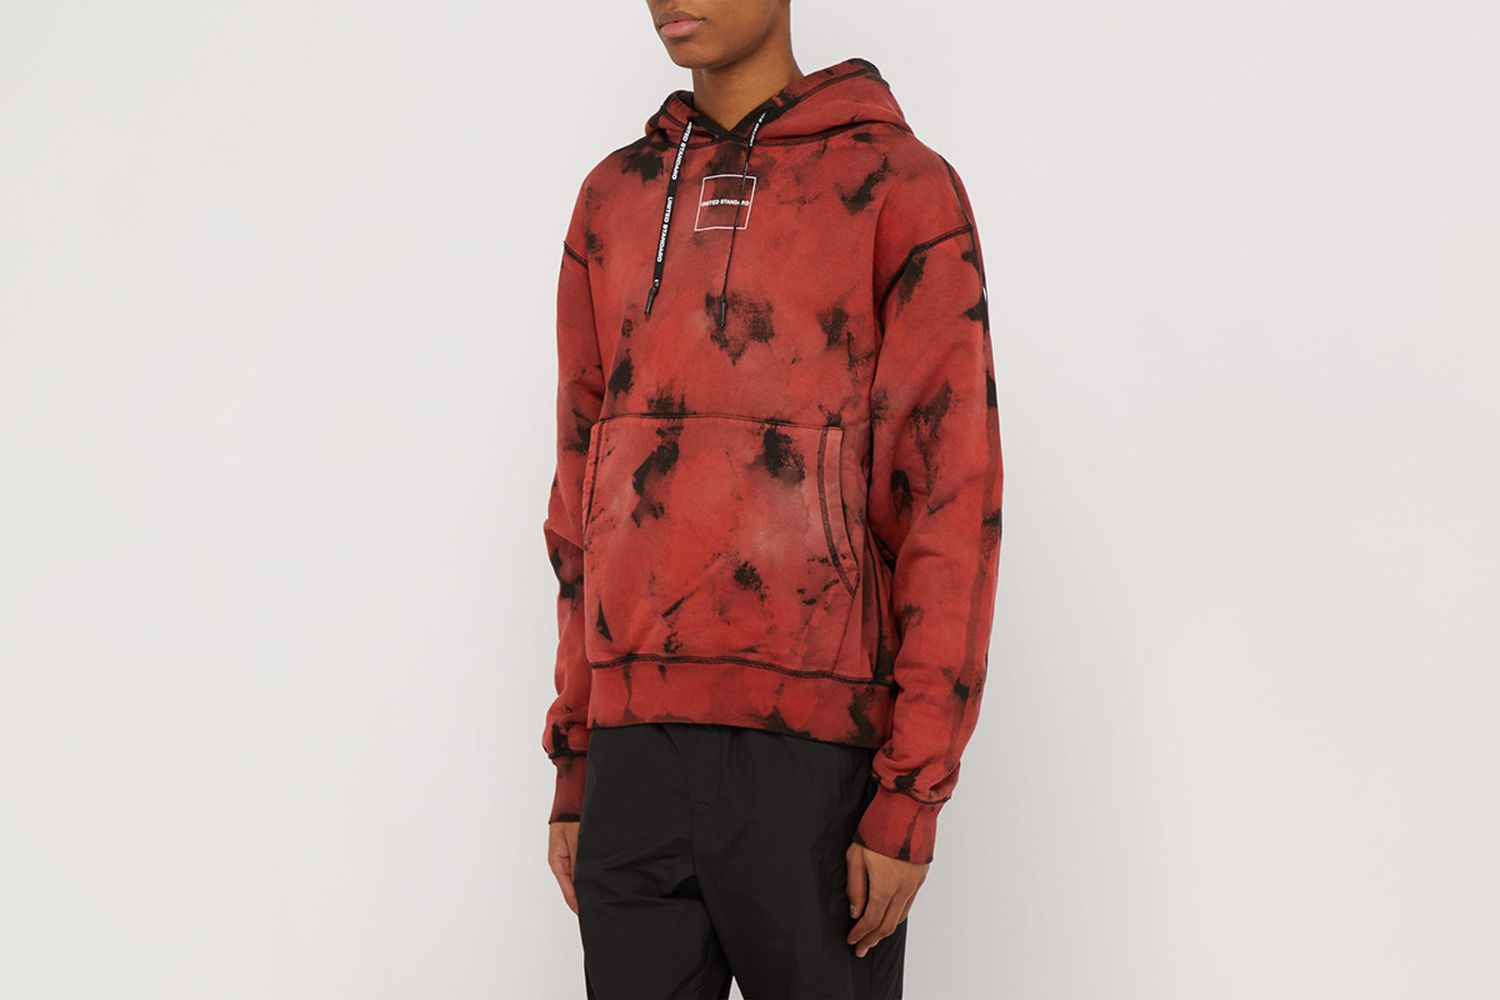 Acid Wash Effect Logo Print Hooded Sweatshirt